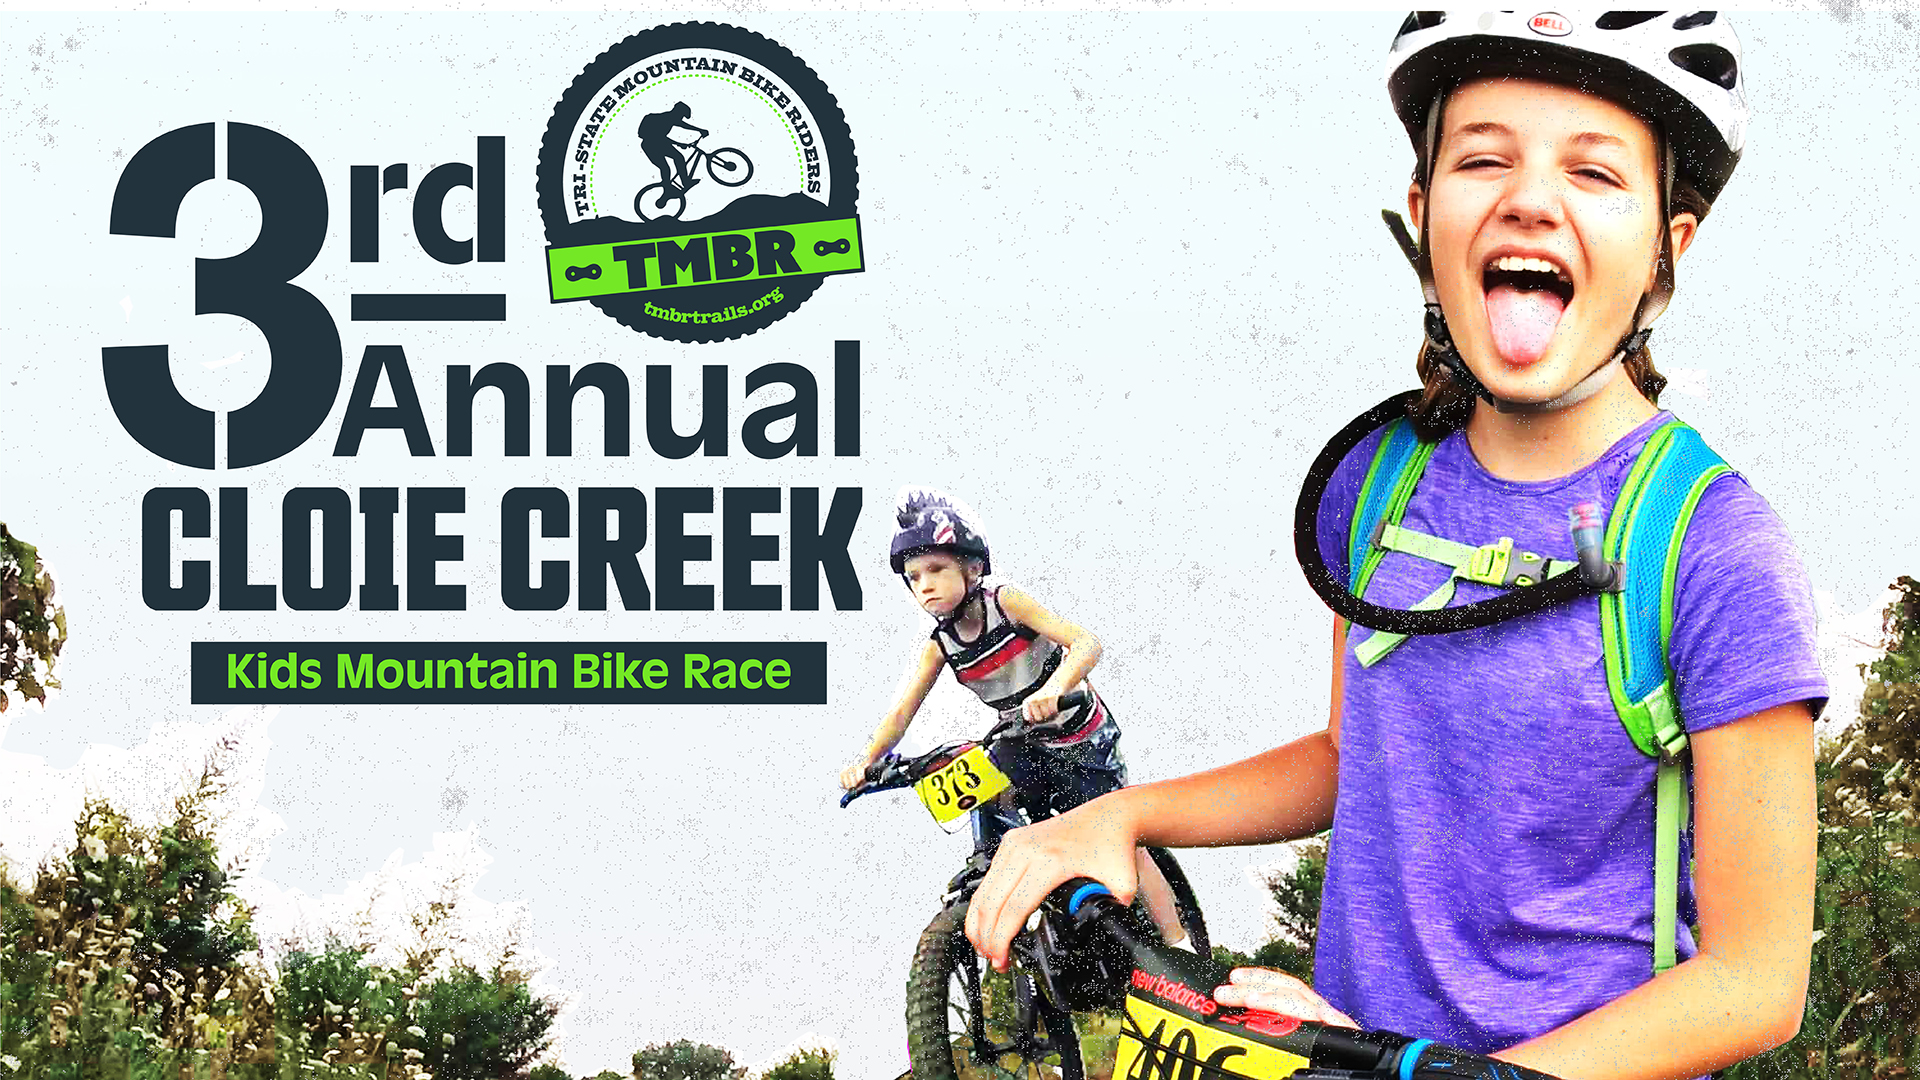 3rd Annual Cloie Creek MTB Race / August 6th @ 5:30pm